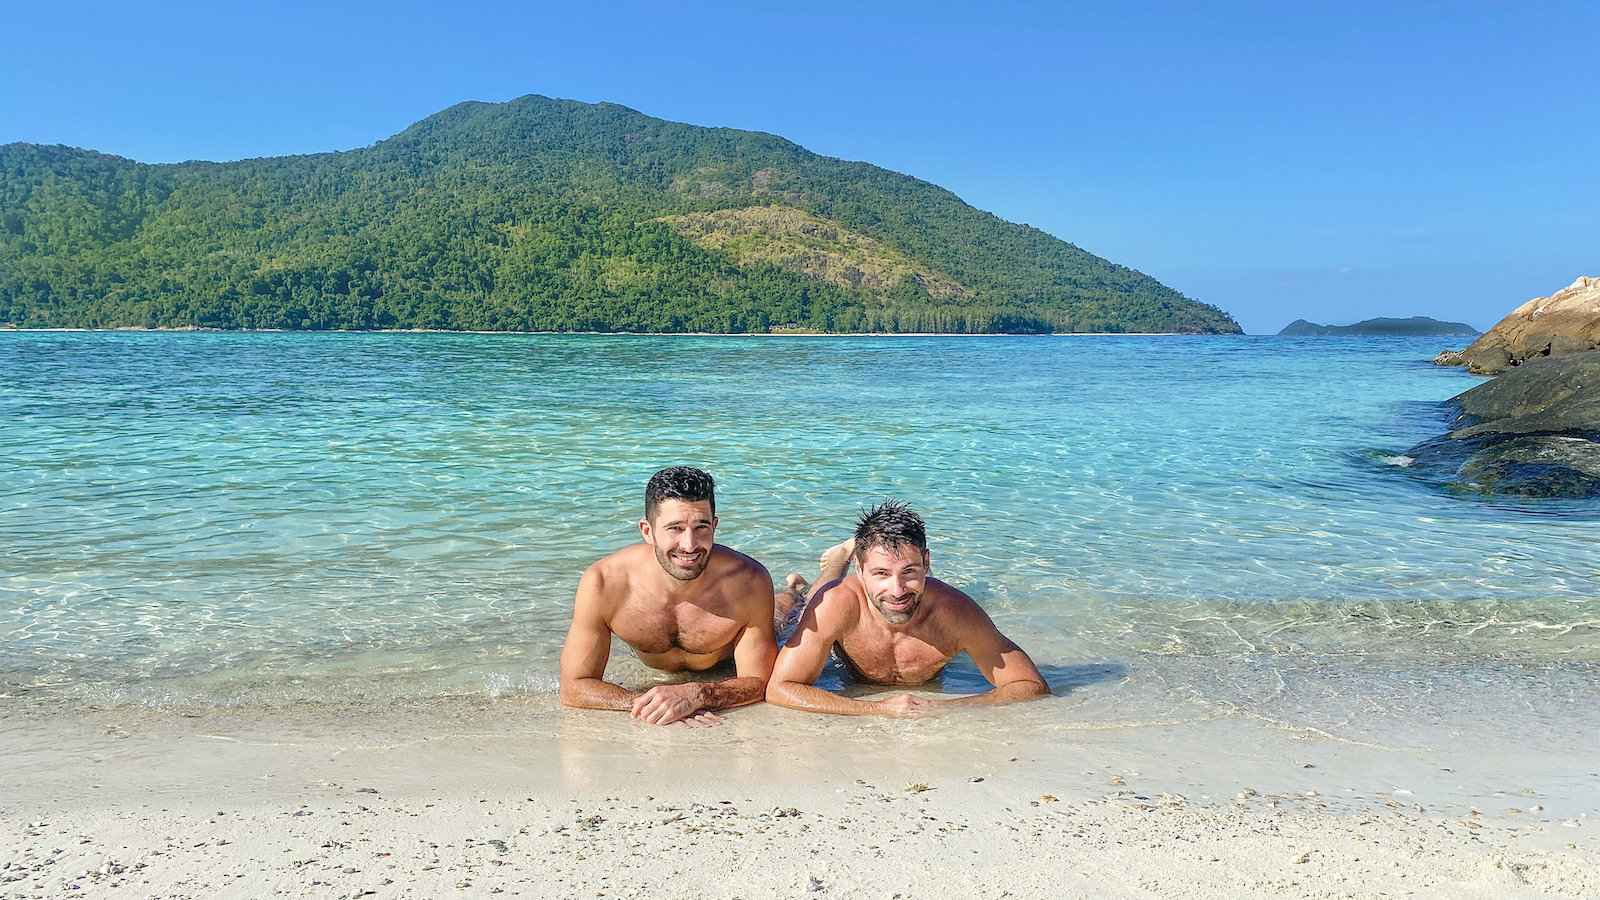 Phuket is one of the best gay islands in Thailand with a great gay scene and gorgeous beaches